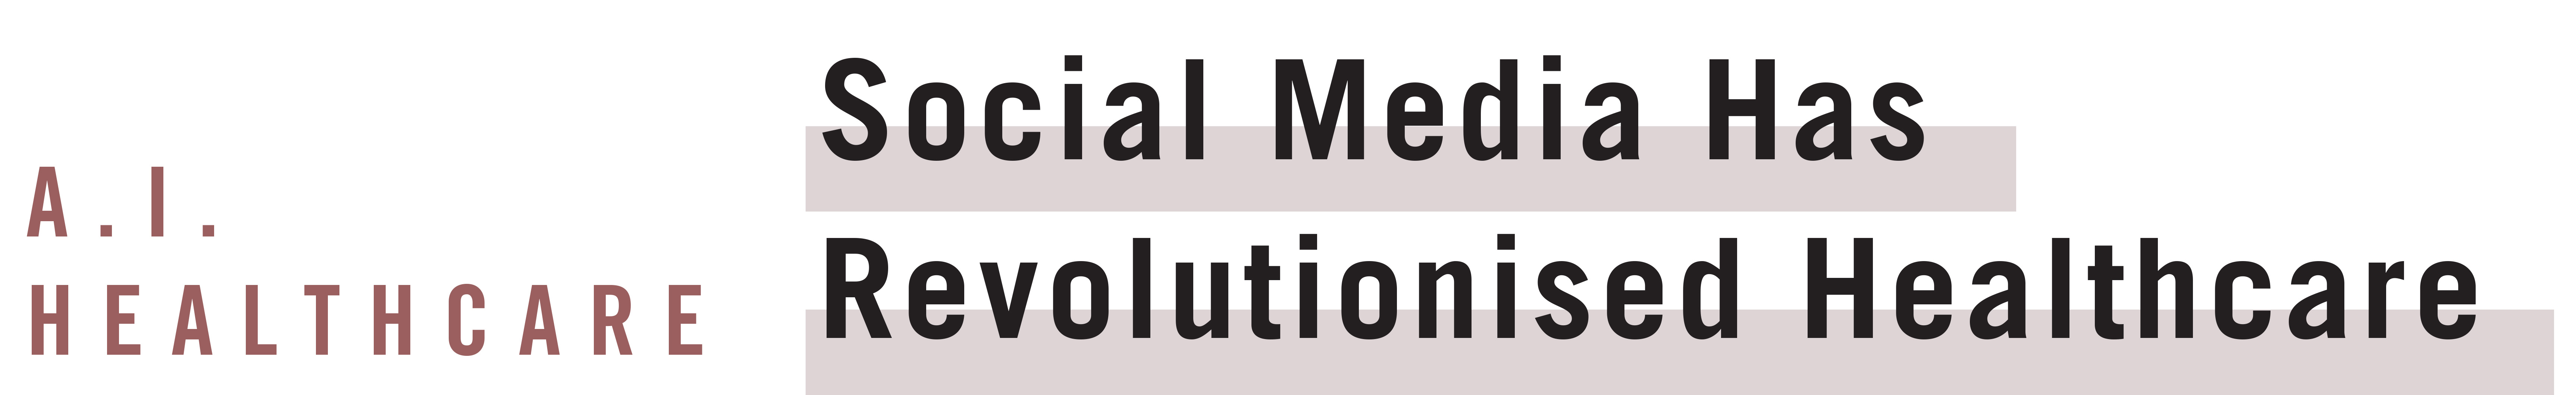 Social Media's Healthcare Revolution